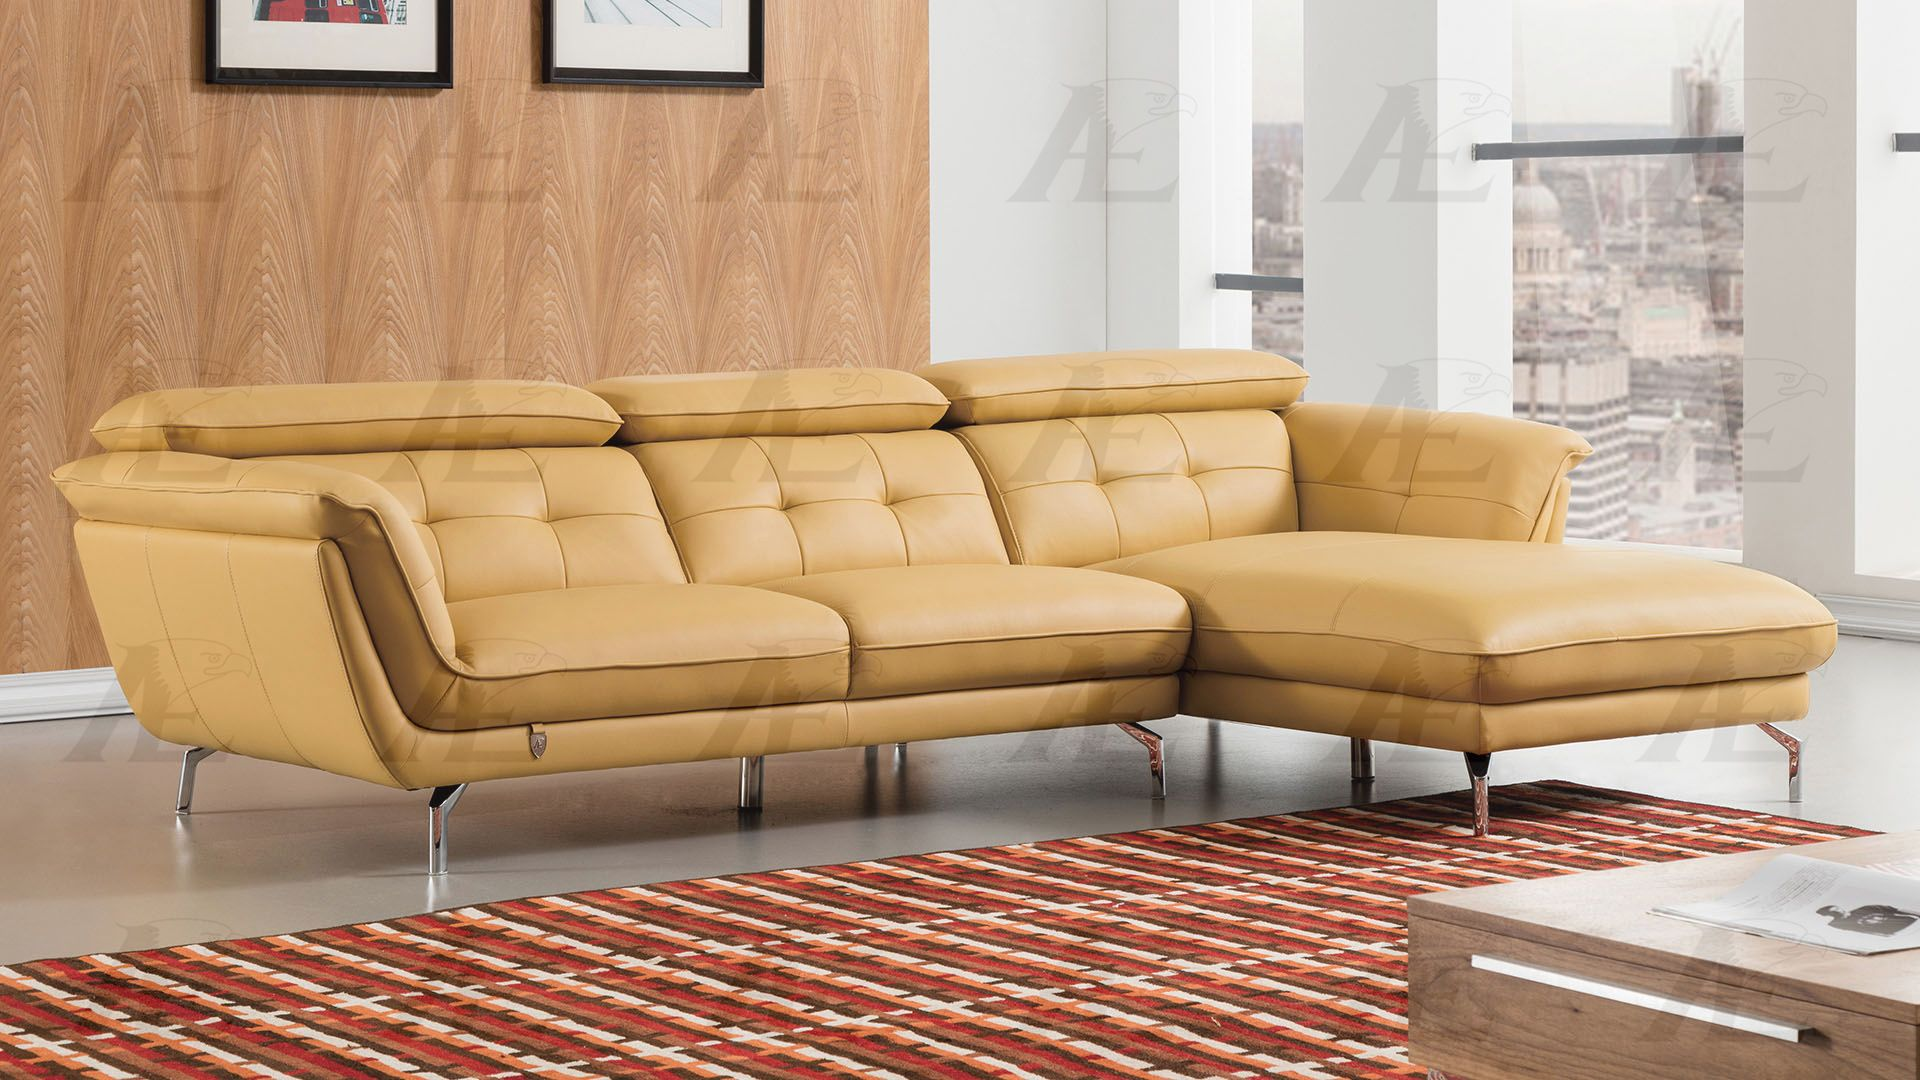 leather sectional sofa sacramento bed chair modern 2pcs yellow match left chaise ...